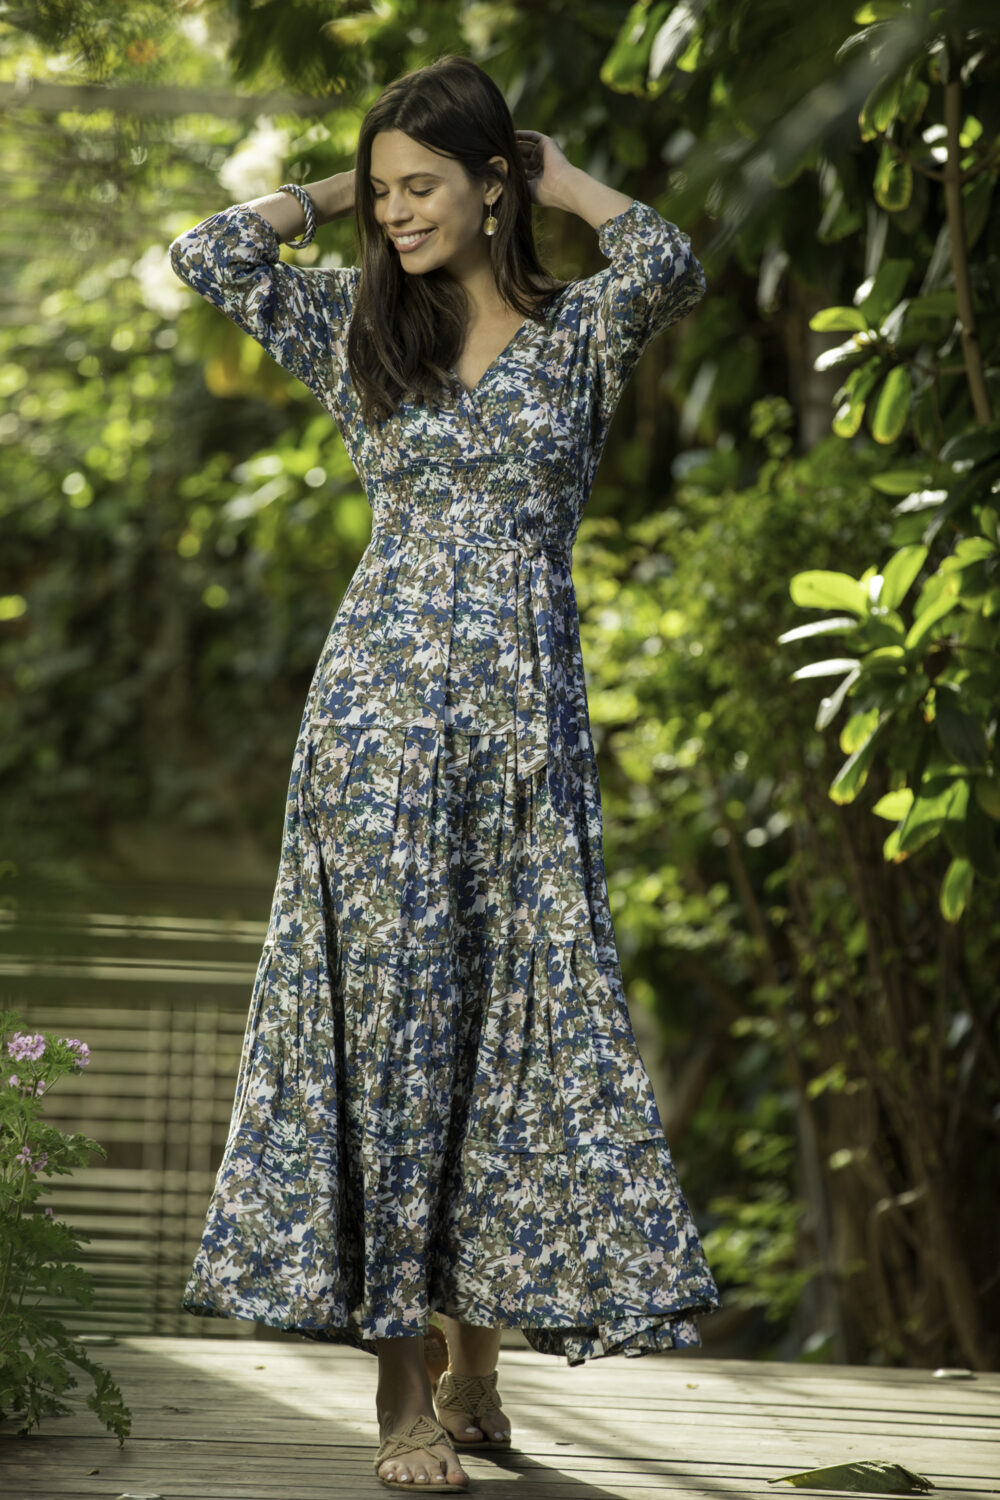 "Romantic Floral 3/4 Sleeves Maxi Dress, Boho Chic Spring Evening Empire Waist ""Carrie"" Special Occasion Mid Day Dress"